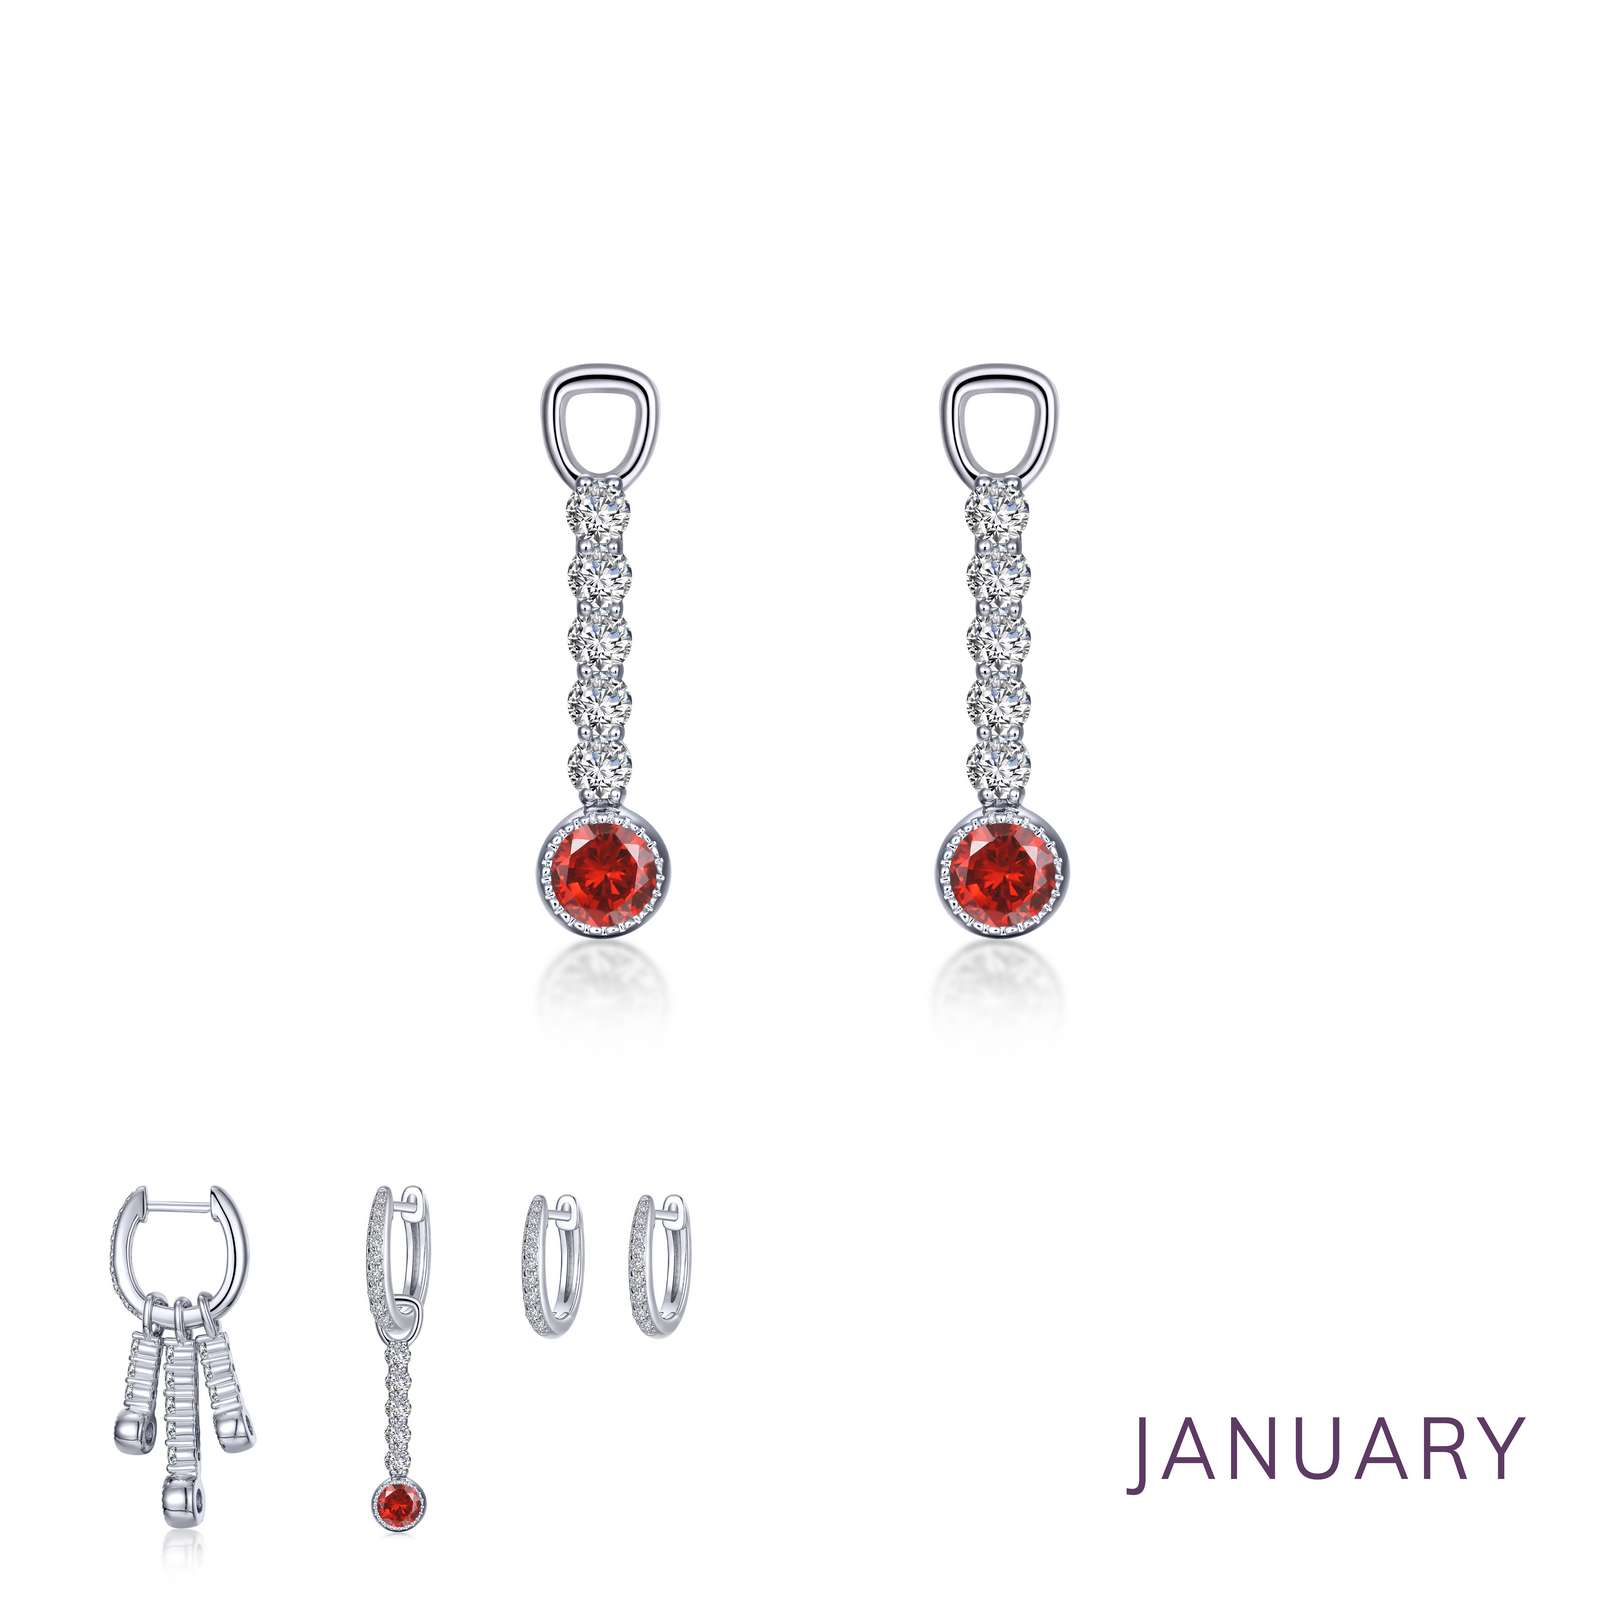 Birthstone January Platinum Bonded Earrings by Lafonn